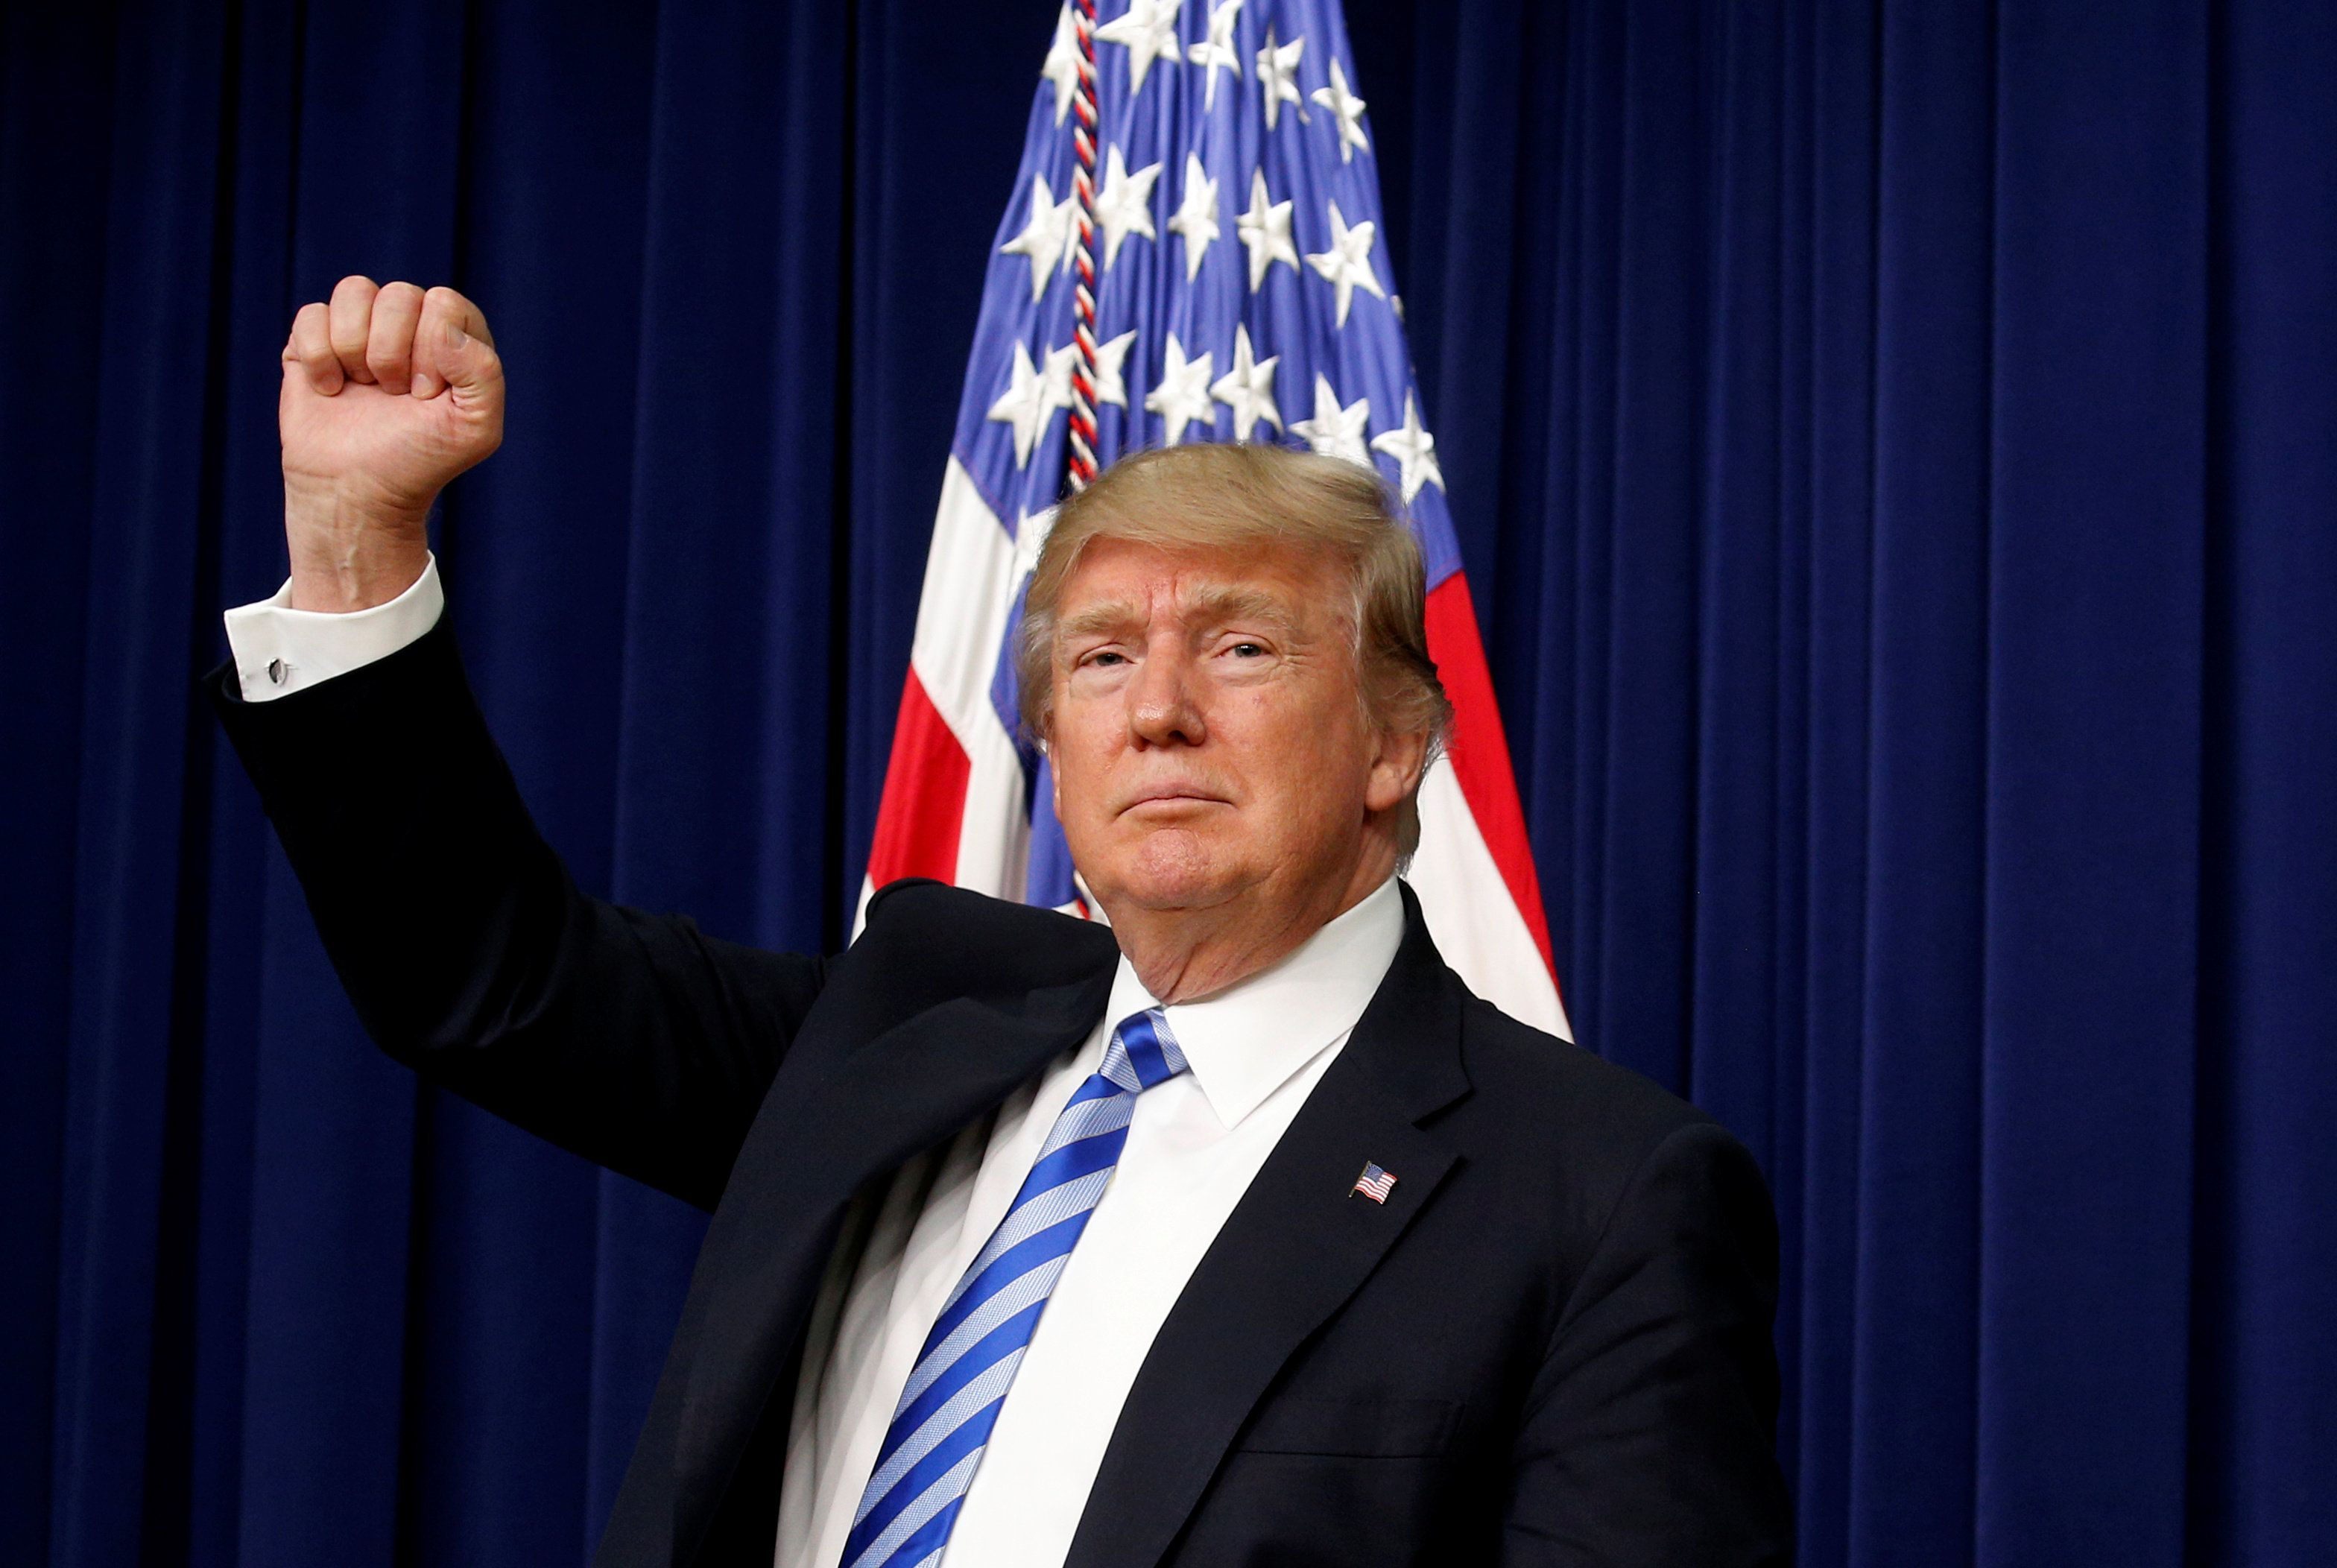 U.S. President Donald Trump pumps his fist as he departs after attending a CEO town hall on the American business climate at the Eisenhower Executive Office Building in Washington, U.S., April 4, 2017. REUTERS/Kevin Lamarque